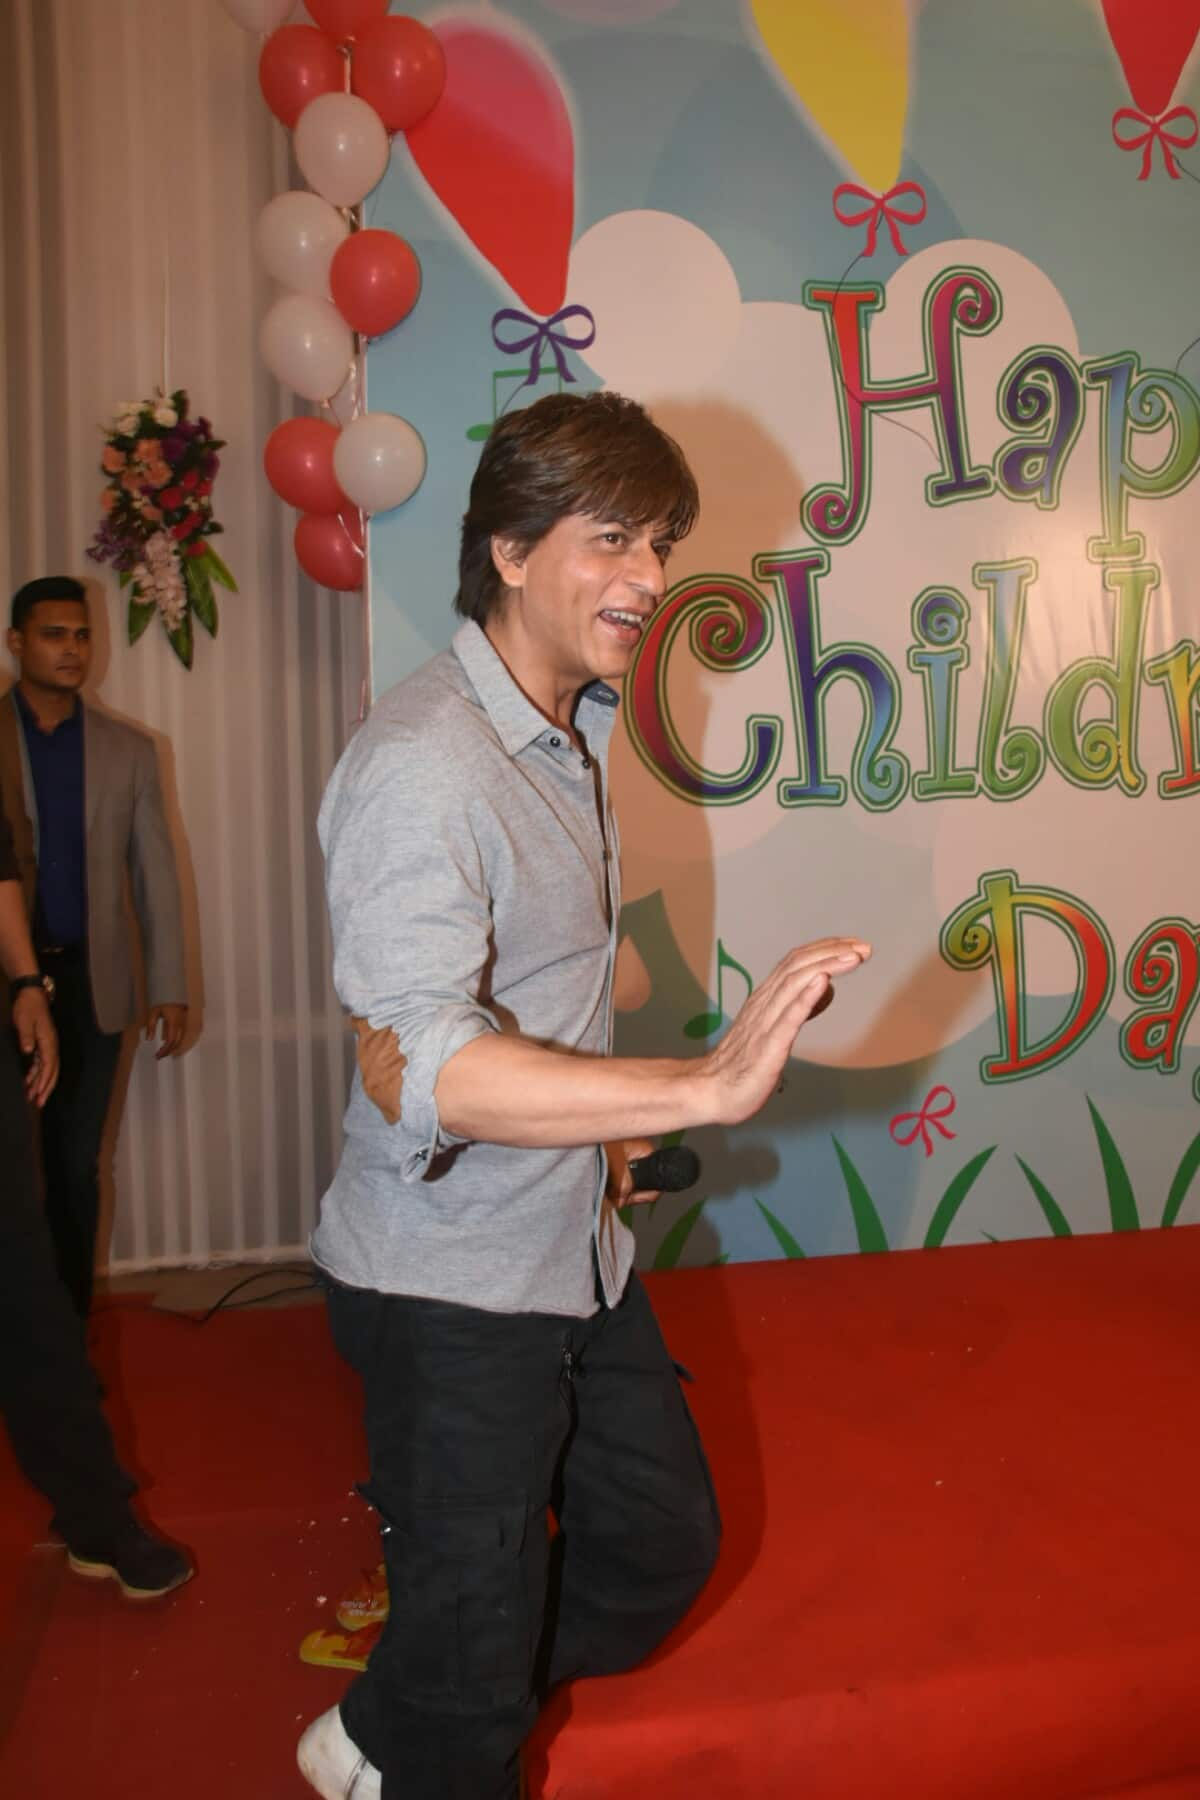 In Pics: Shah Rukh Khan Celebrates Children's Day With Over 100 Kids